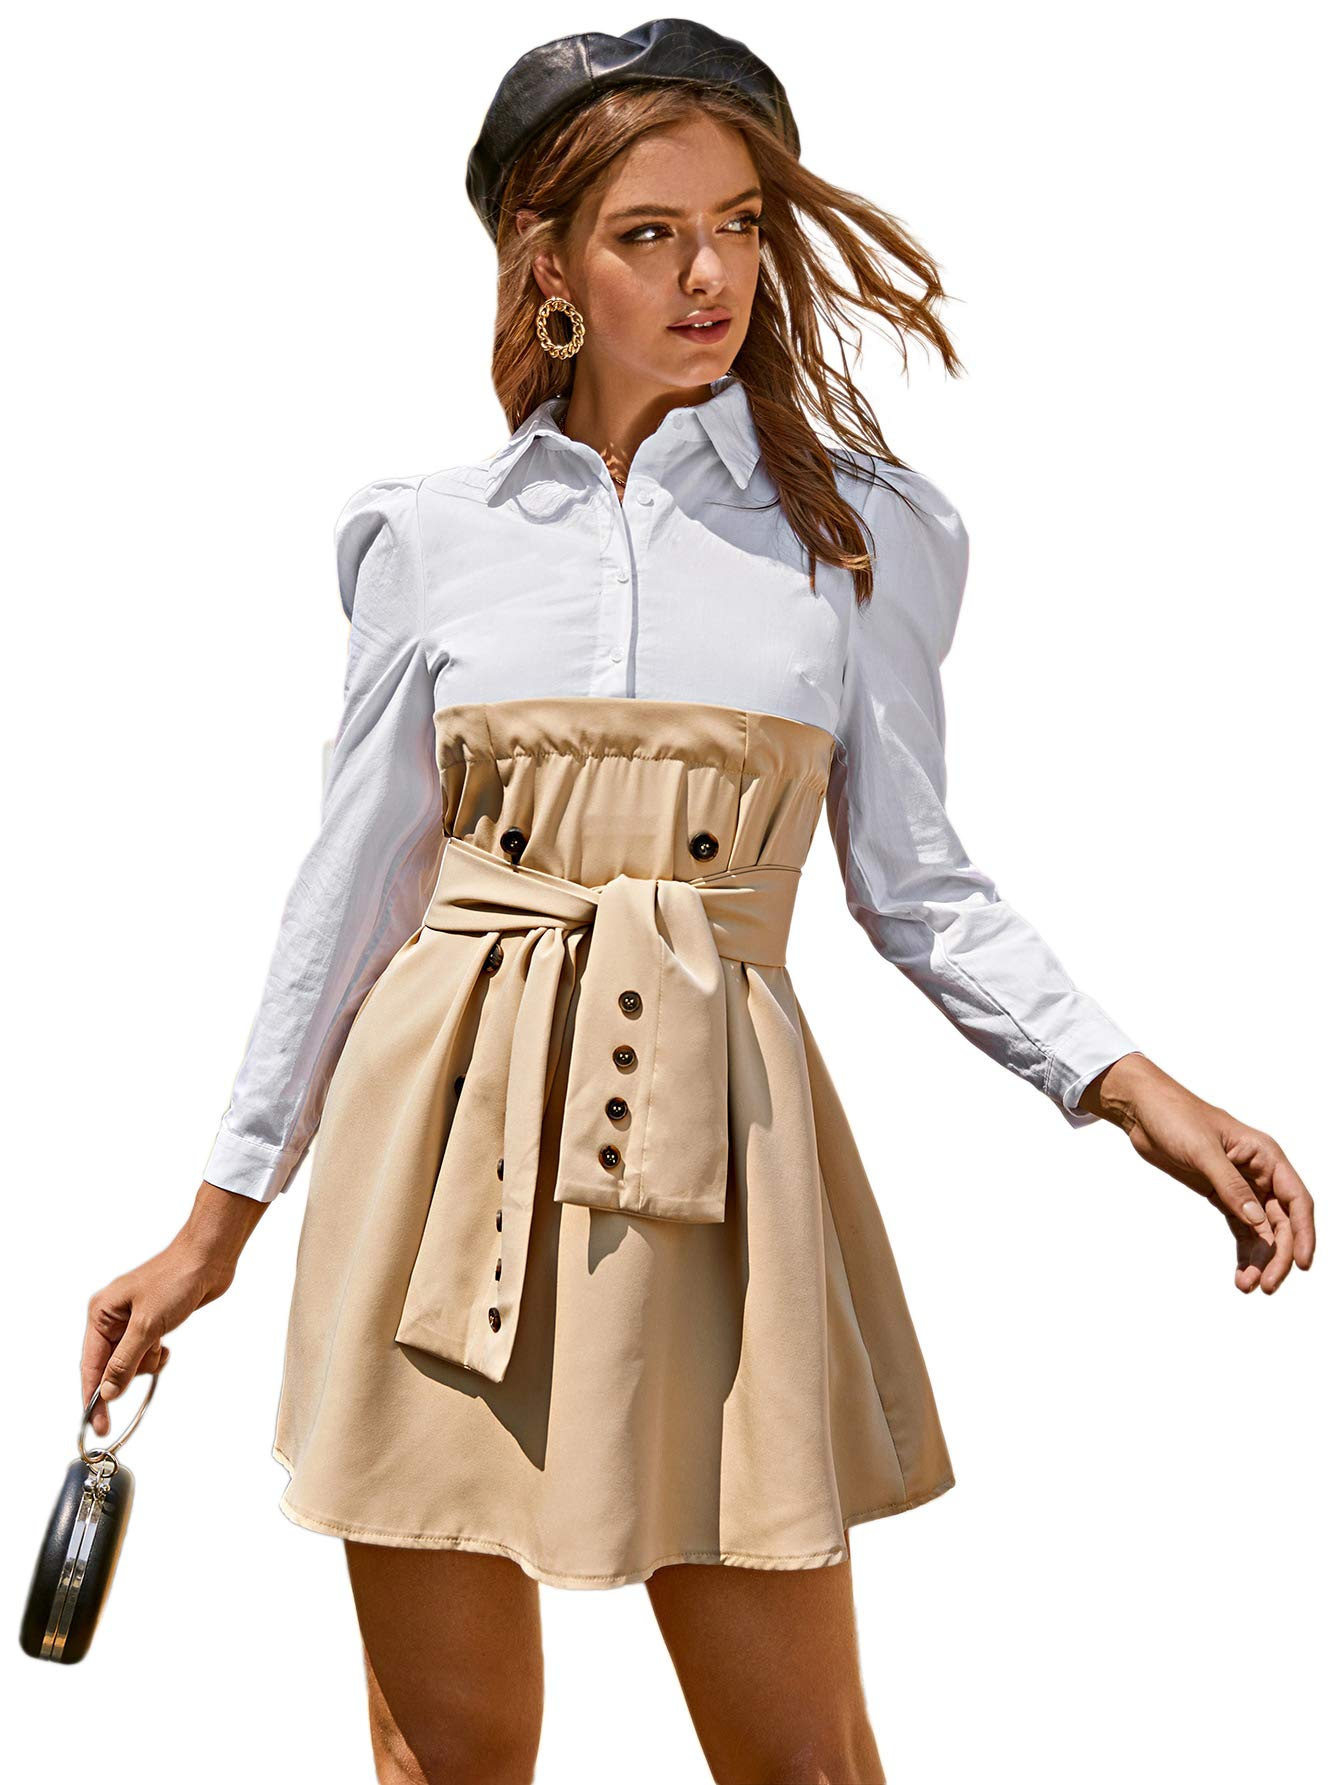 Available at Amazon: Verdusa Women's Puff Sleeve Double Breasted High Waist Belted Shift Dress